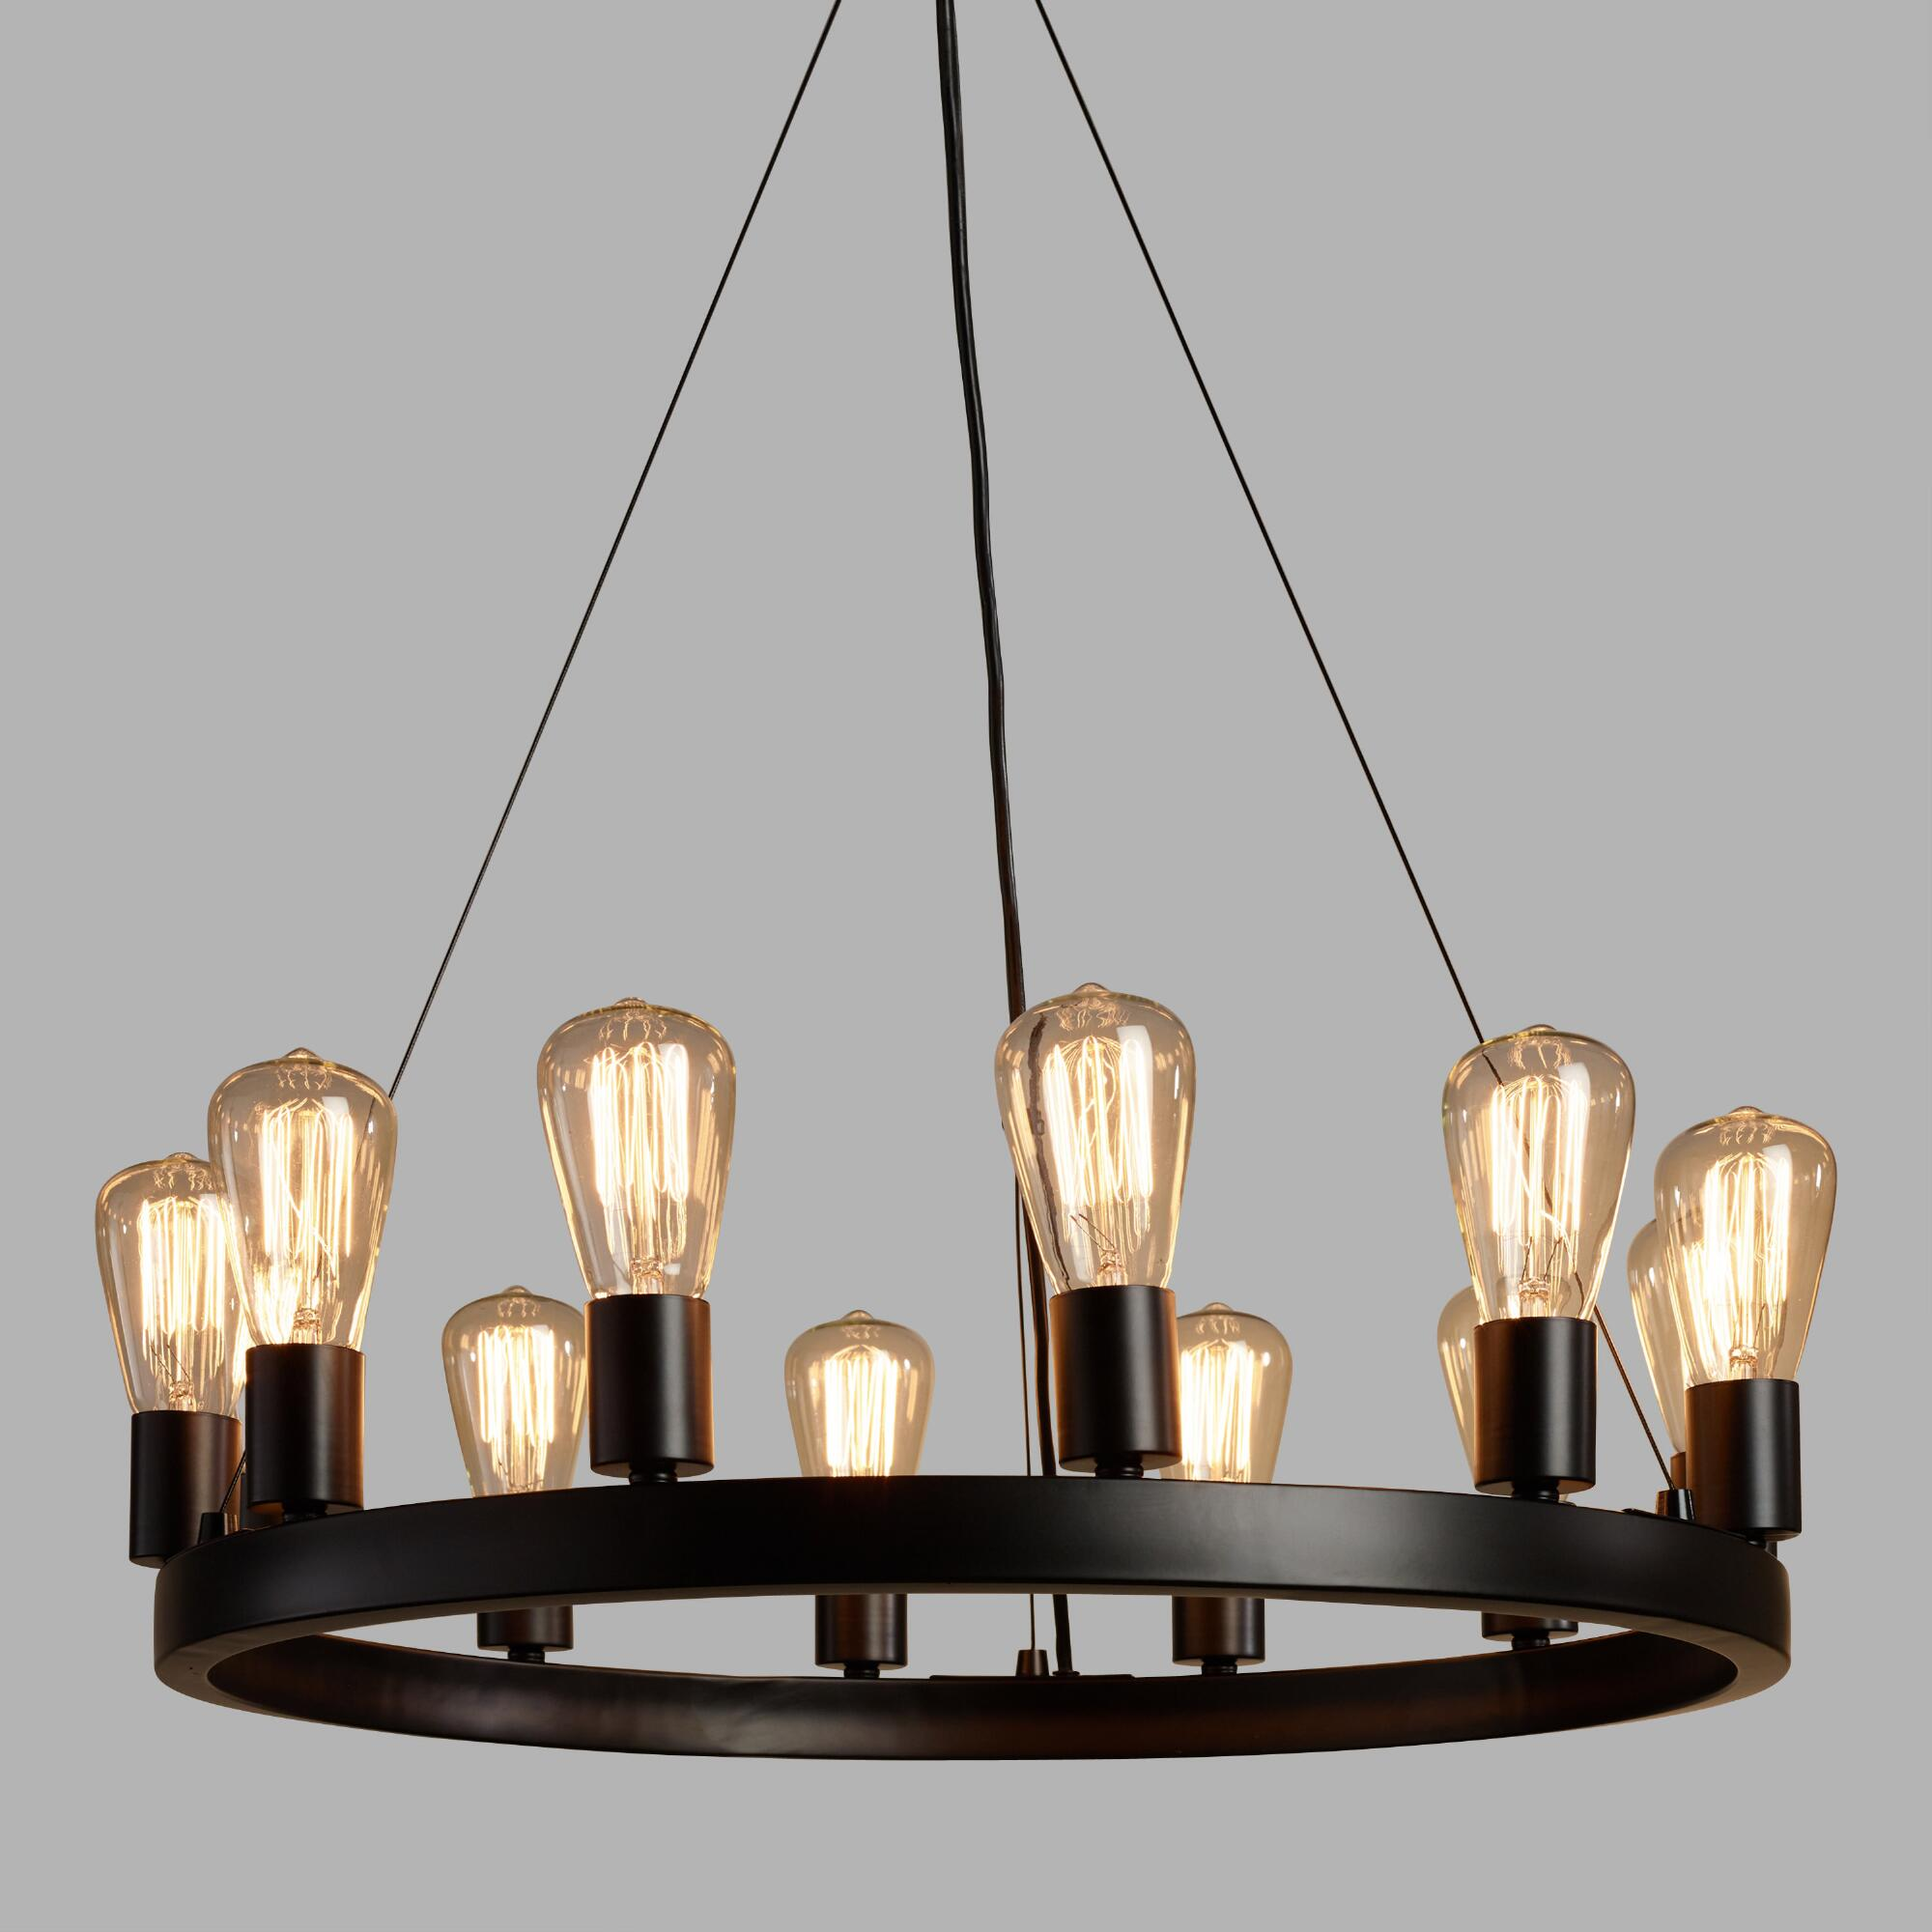 Pendant lighting light fixtures chandeliers world market round 12 light edison bulb chandelier arubaitofo Image collections